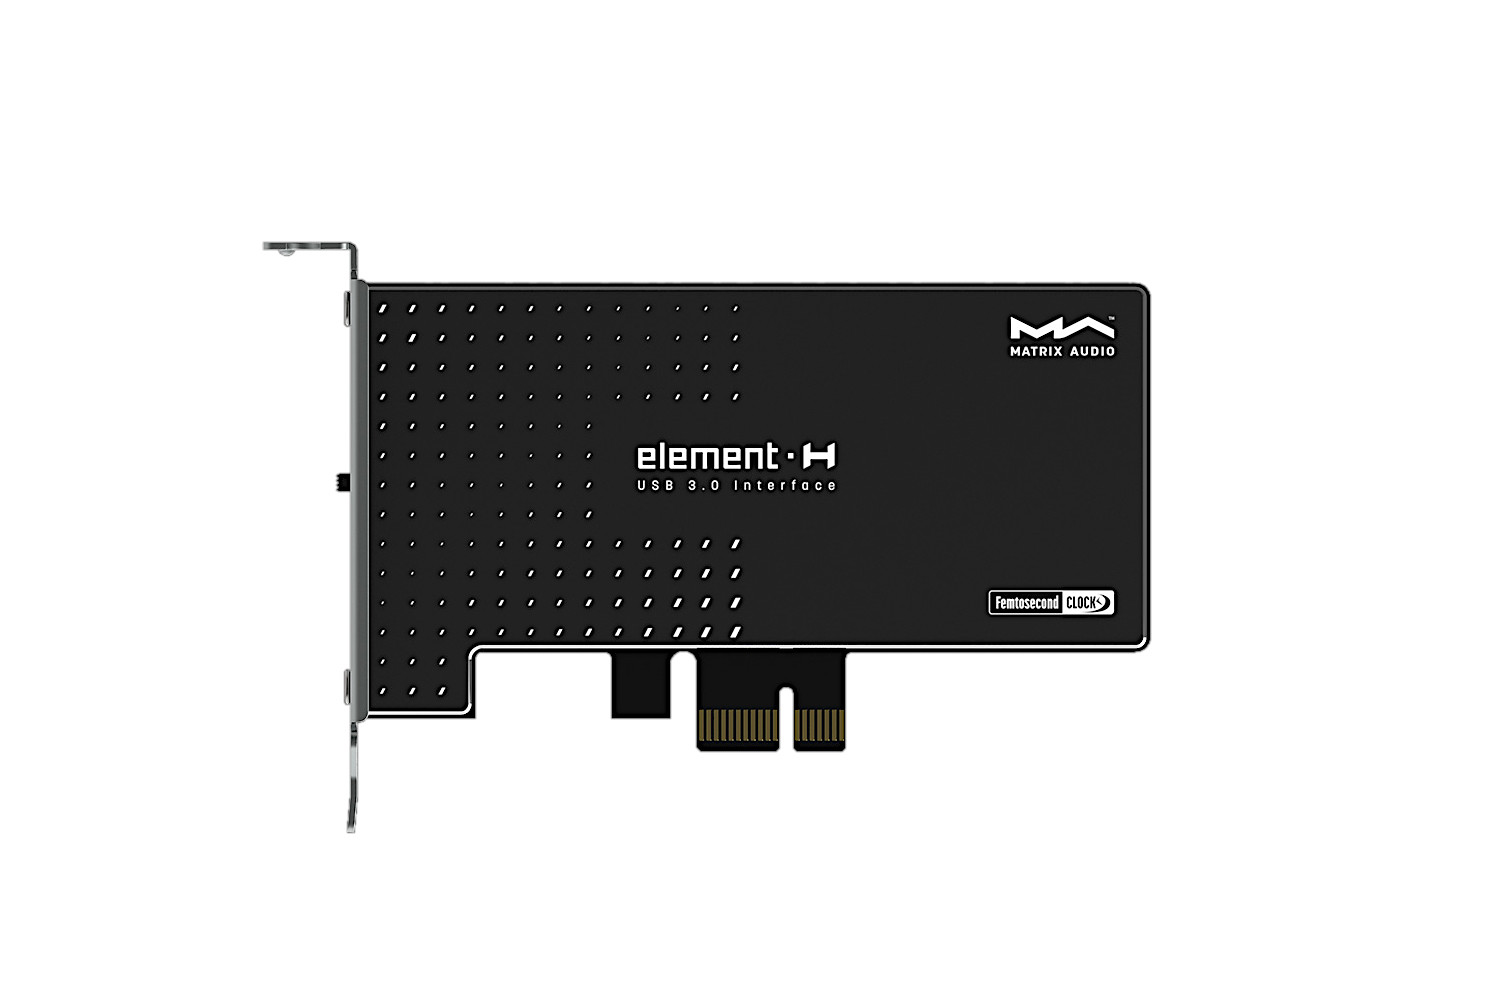 Matrix Element H USB 3.0 Interface